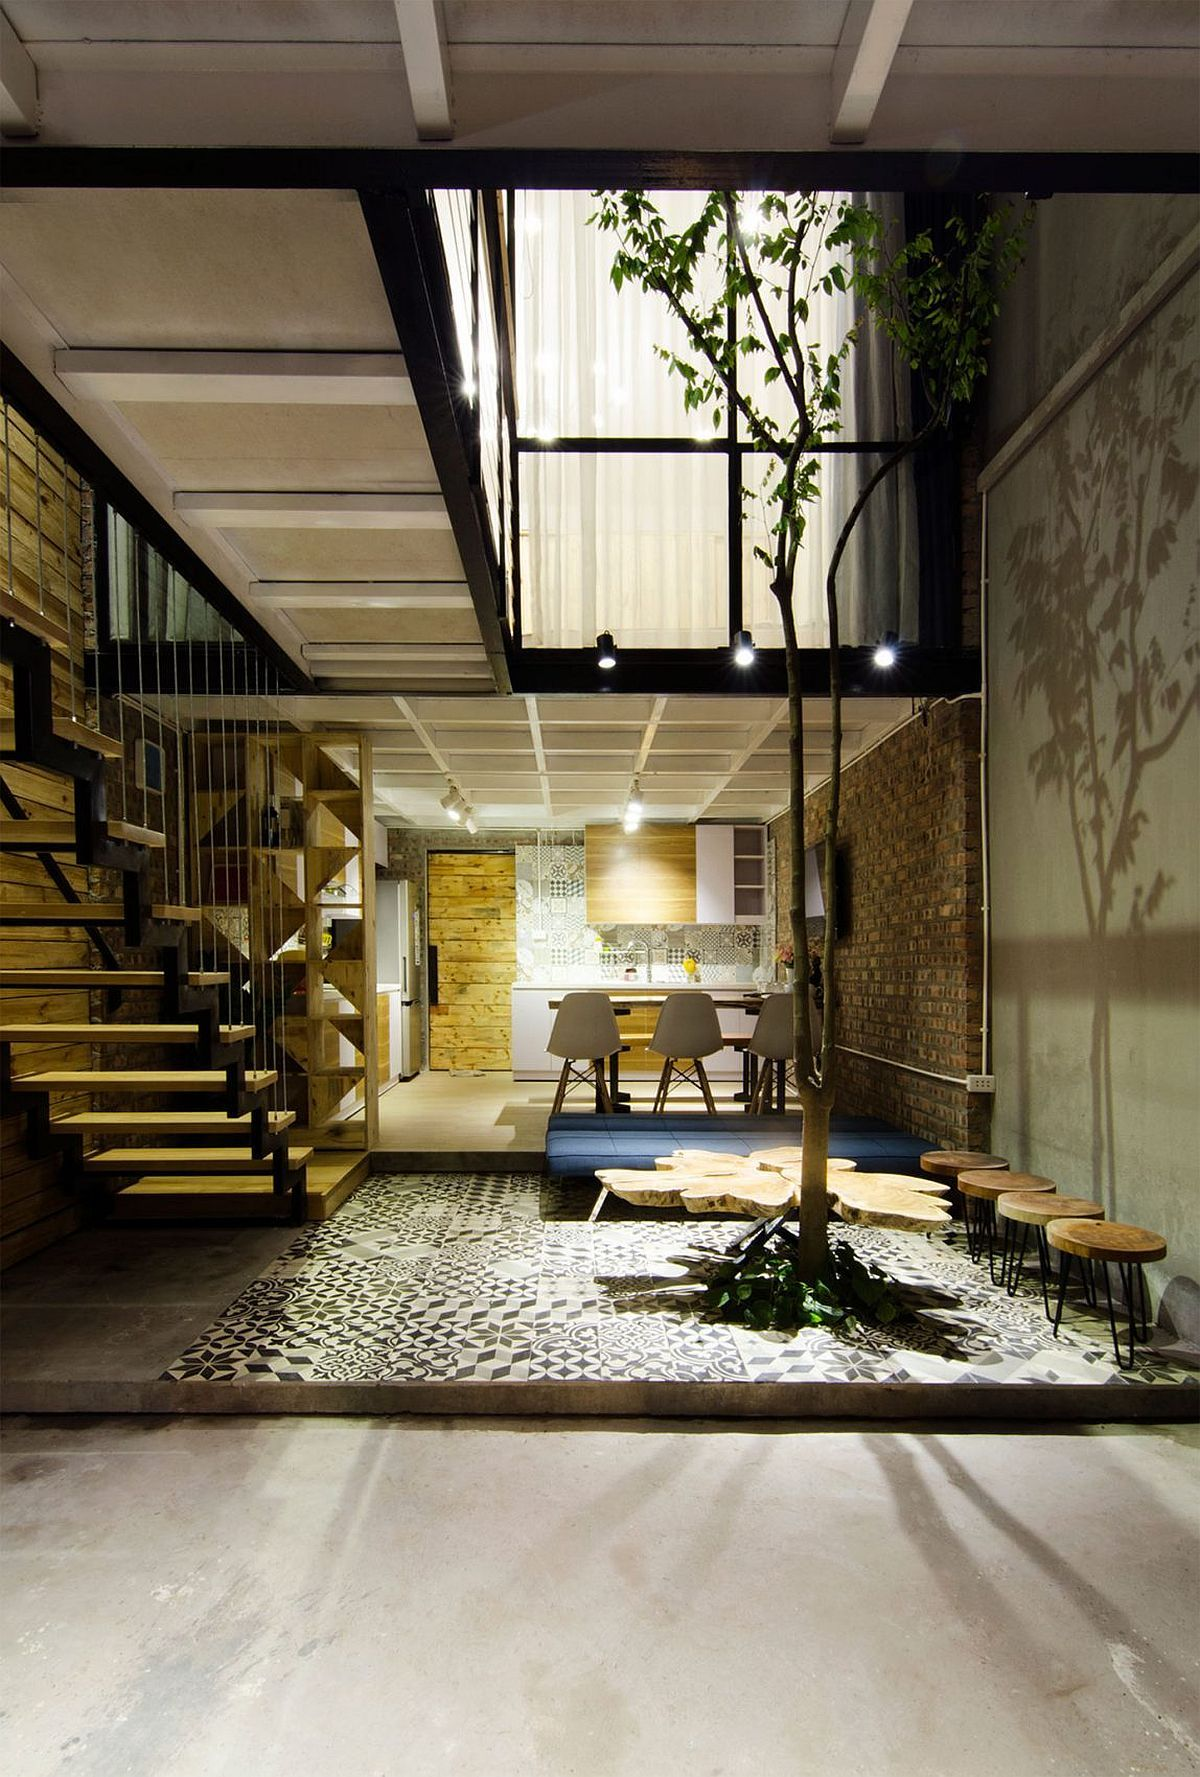 Small Home Maximizes Space And Ventilation Using A Cool